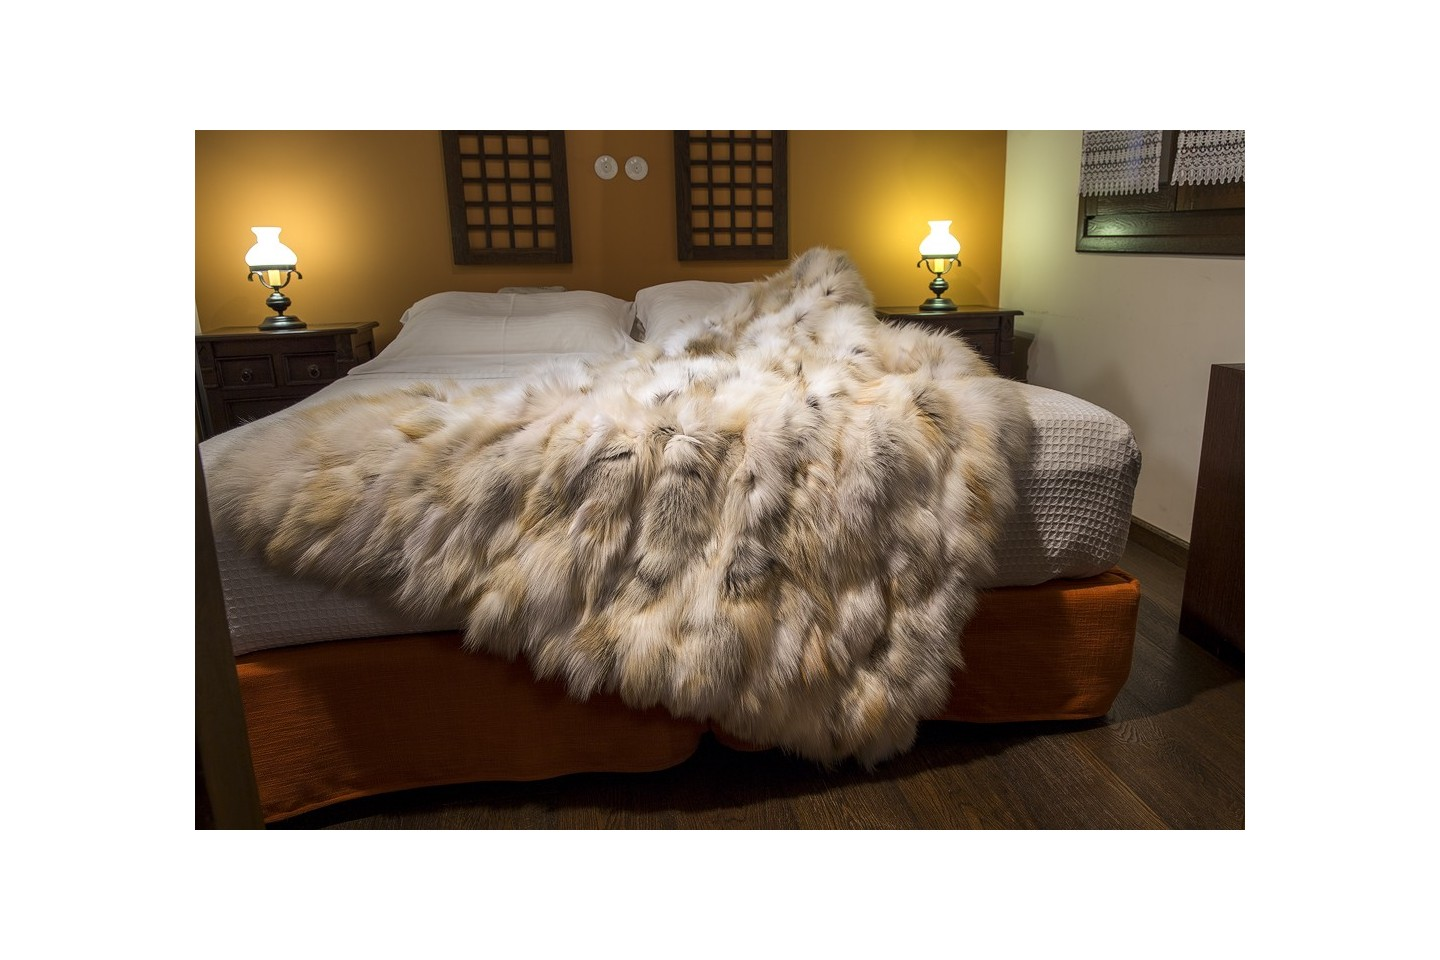 Golden Island Fox Fur Bedspread Blanket Throw Fur Home